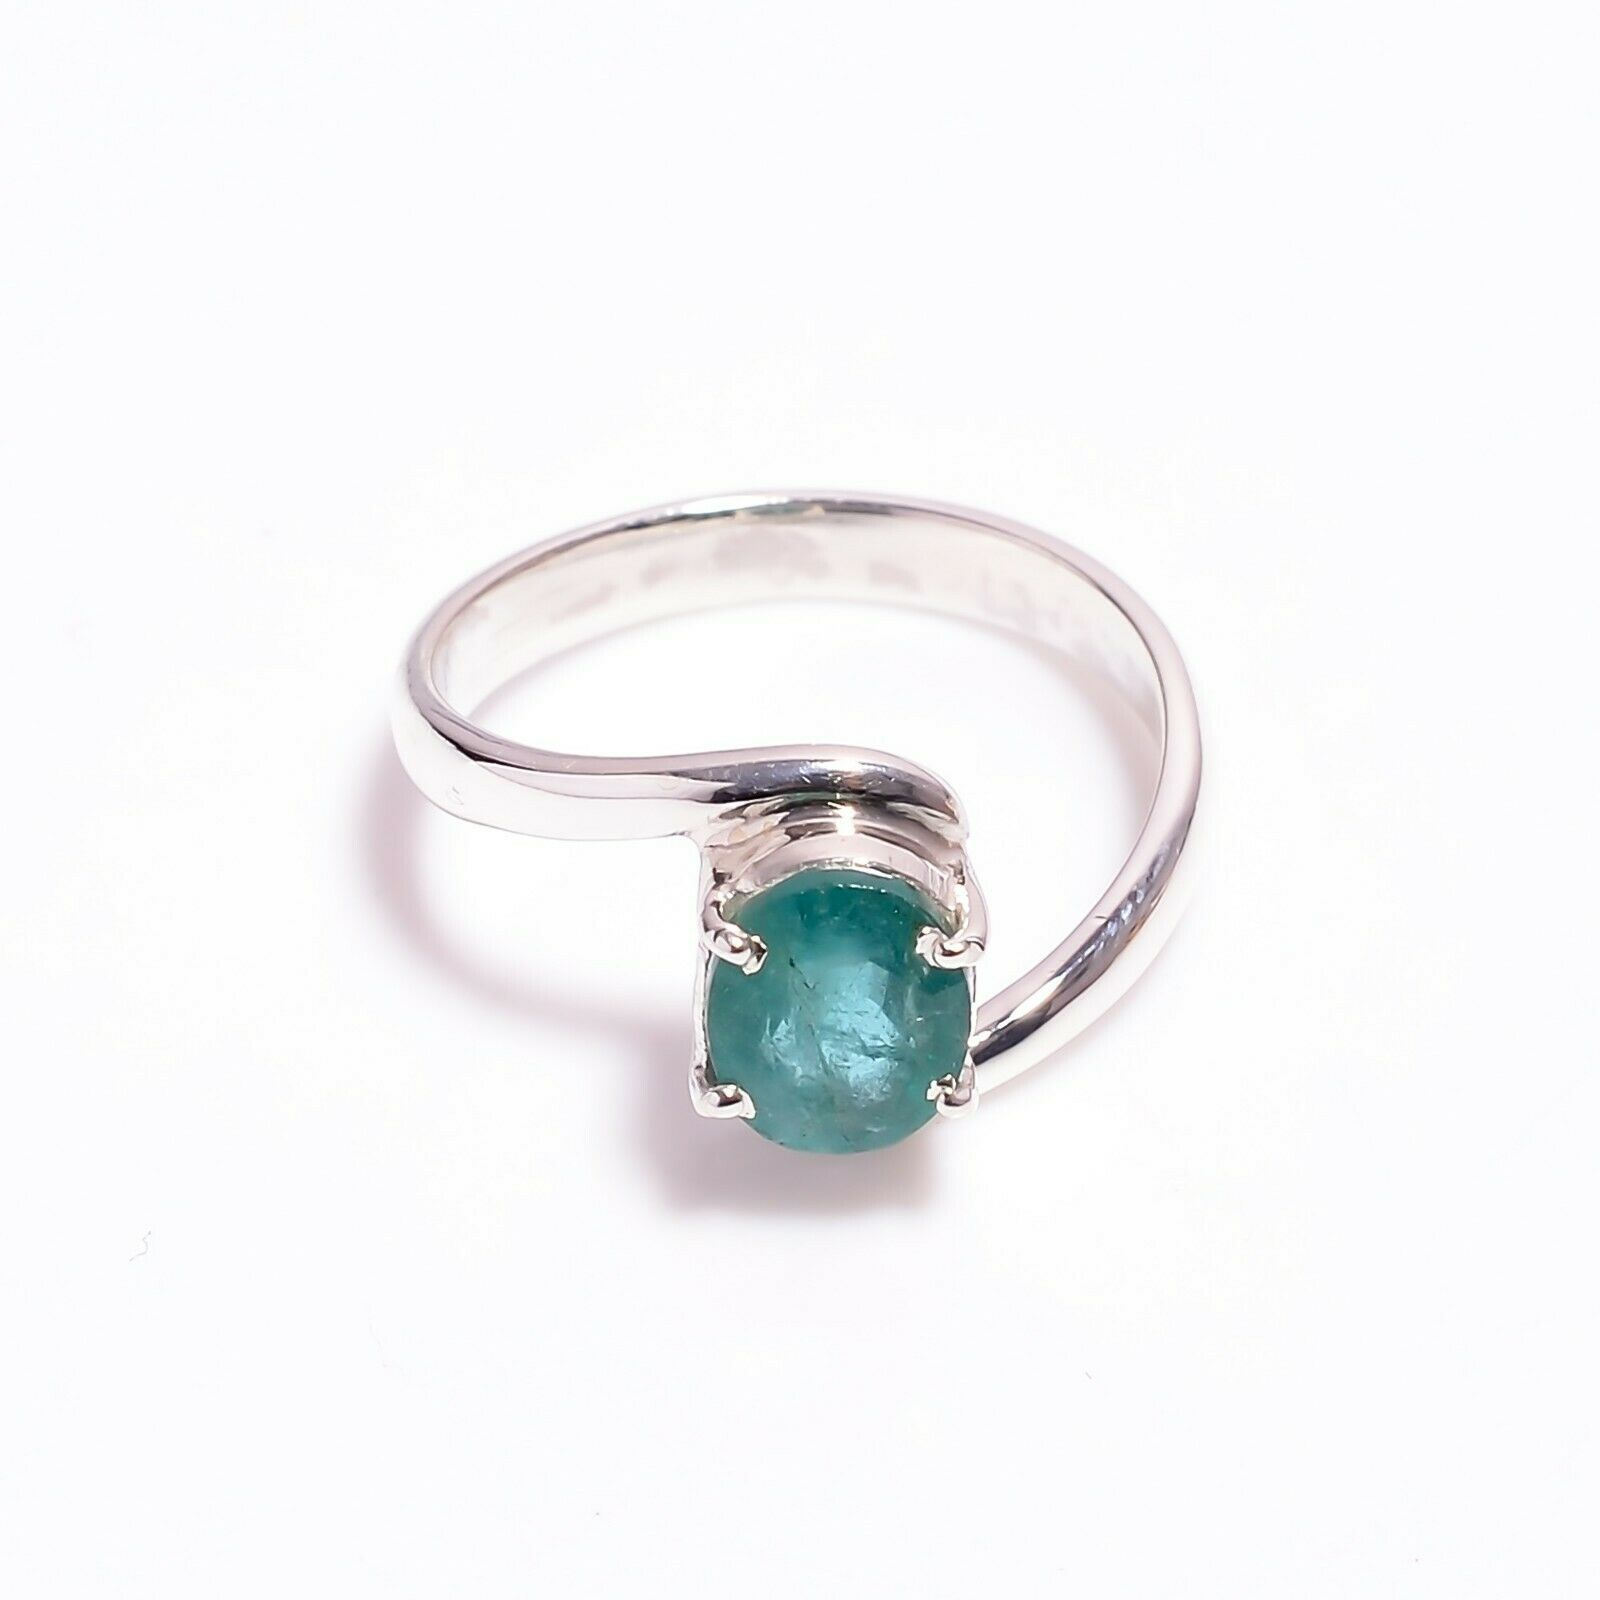 Anniversary,Midi Ring,Engagement Ring Promise Ring Statement Ring,May Birthstone -RE-035 Emerald Ring,92.5 Sterling Silver Valentine Gift